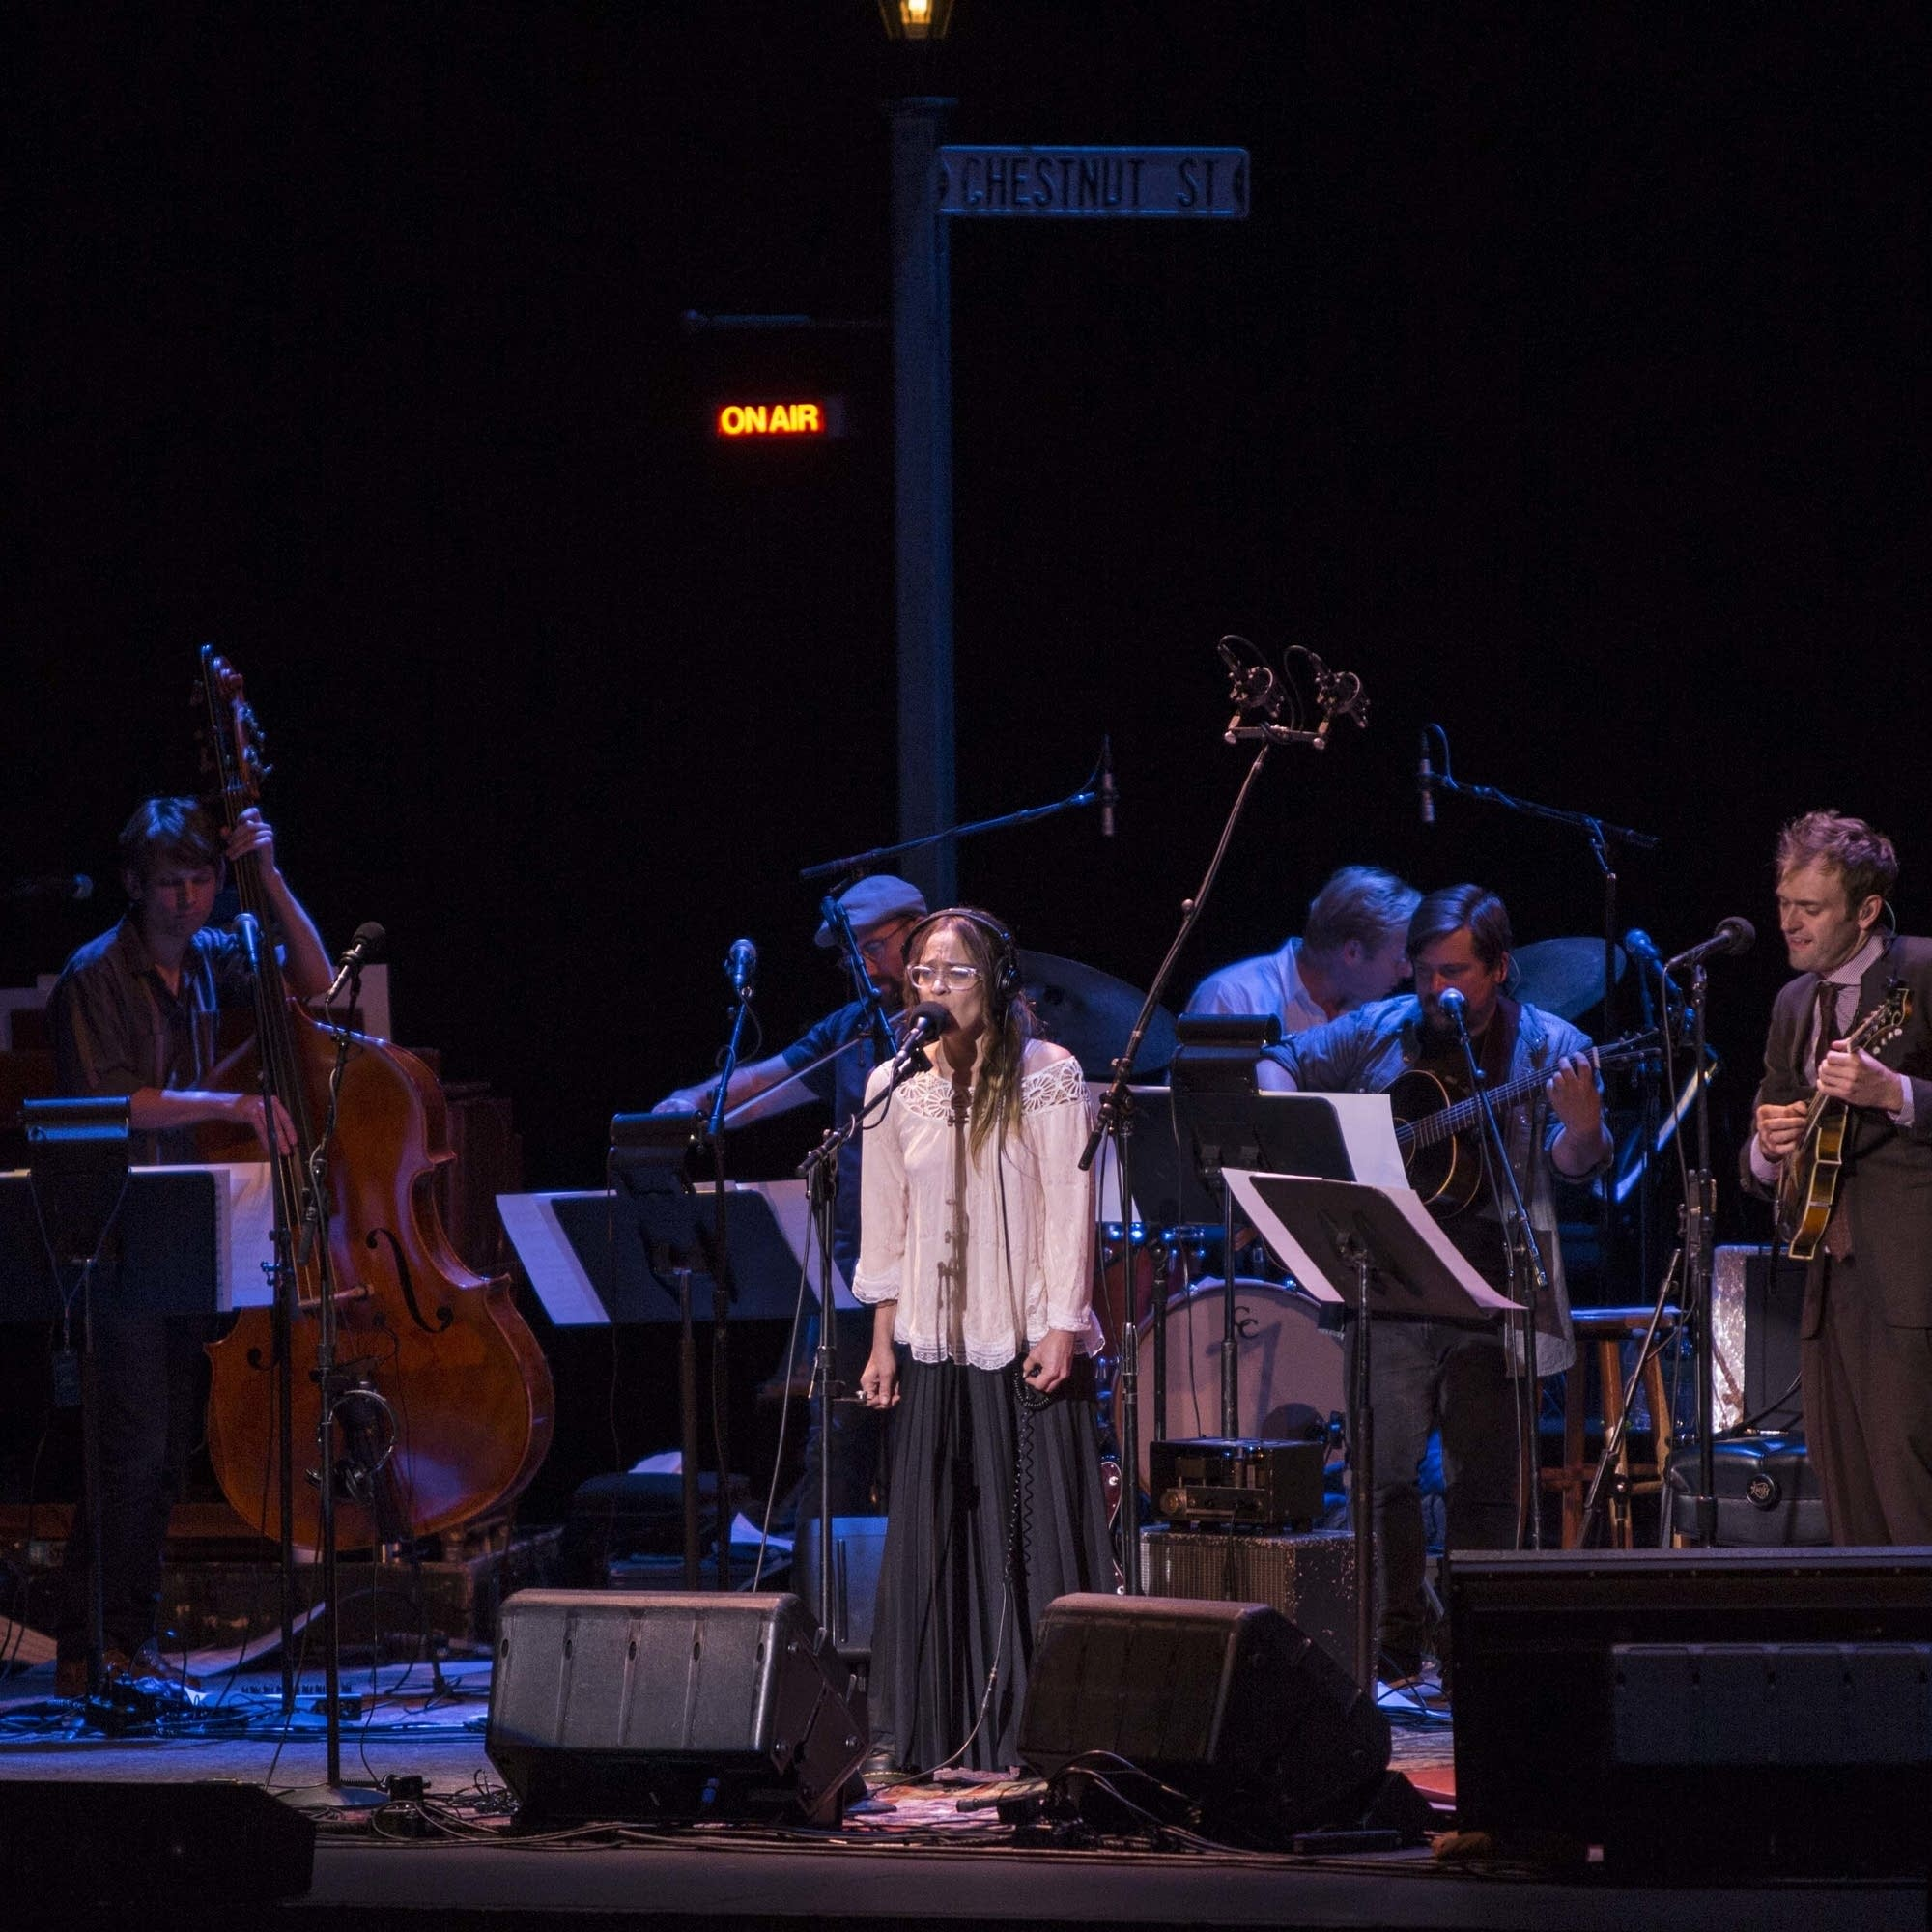 'Fast As You Can' Fiona Apple, Chris and band